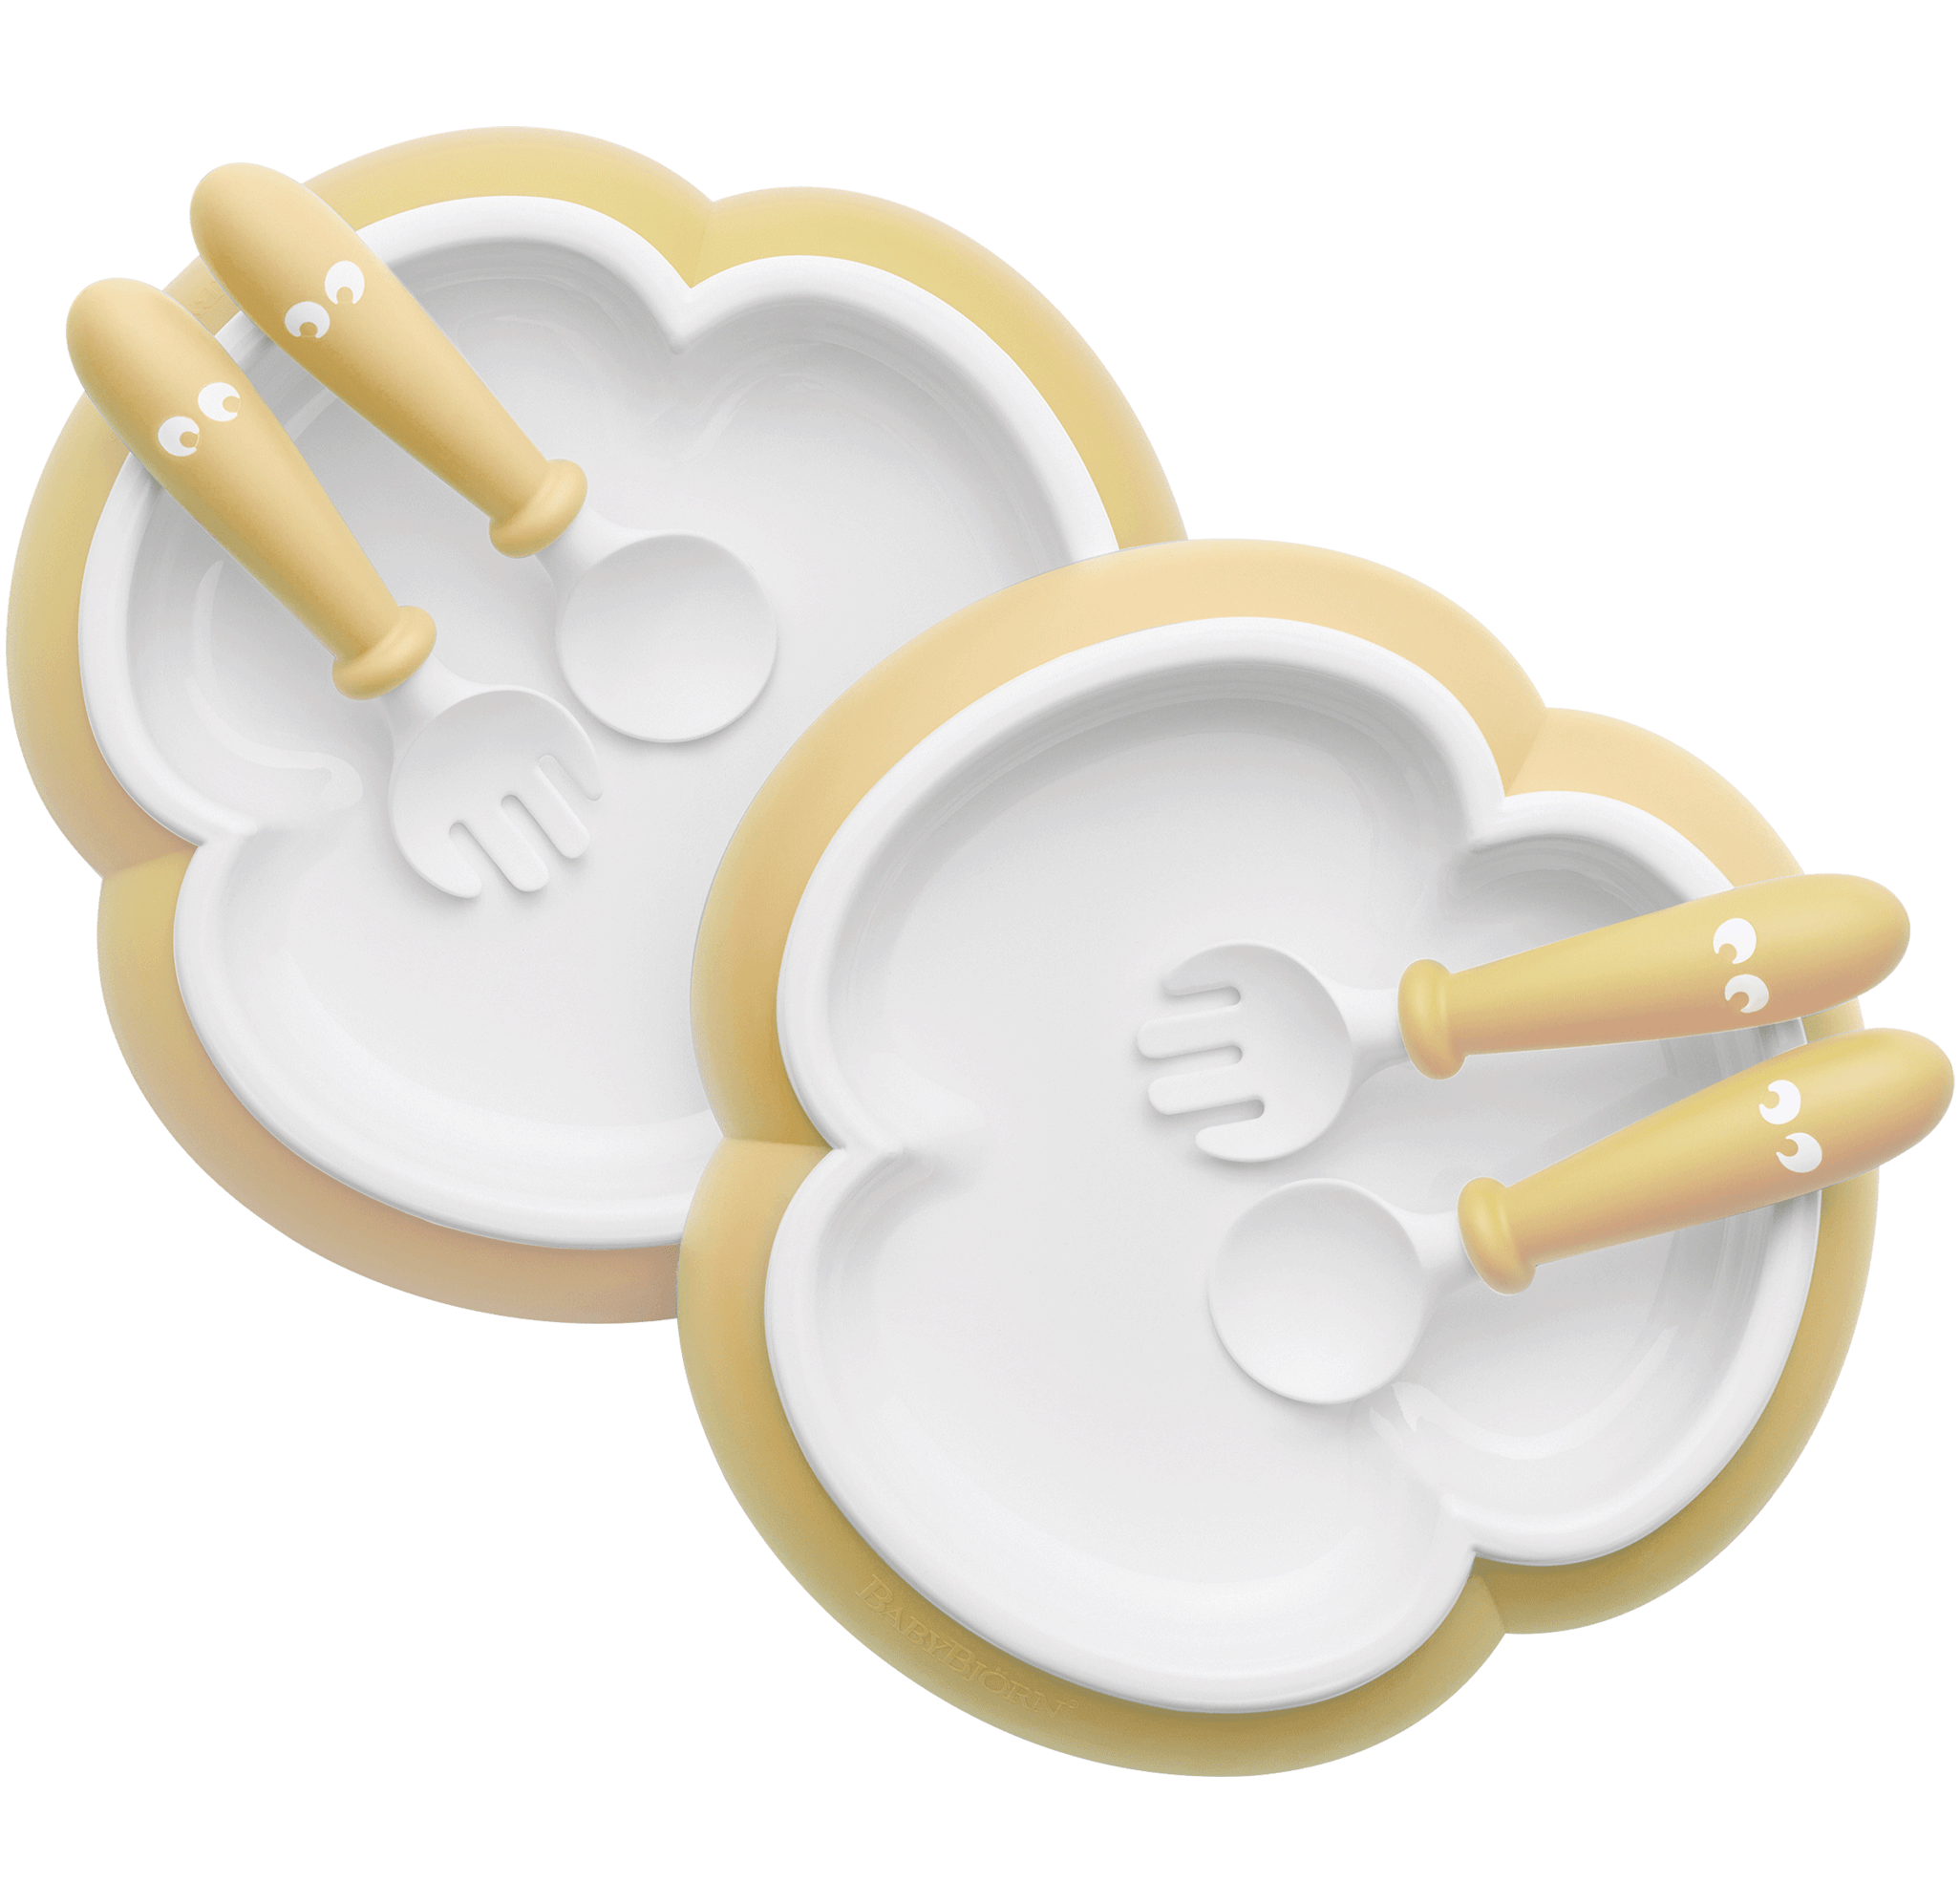 Baby First Steps Baby Feeding Set Plate Bowl Cups, Dishes & Utensils